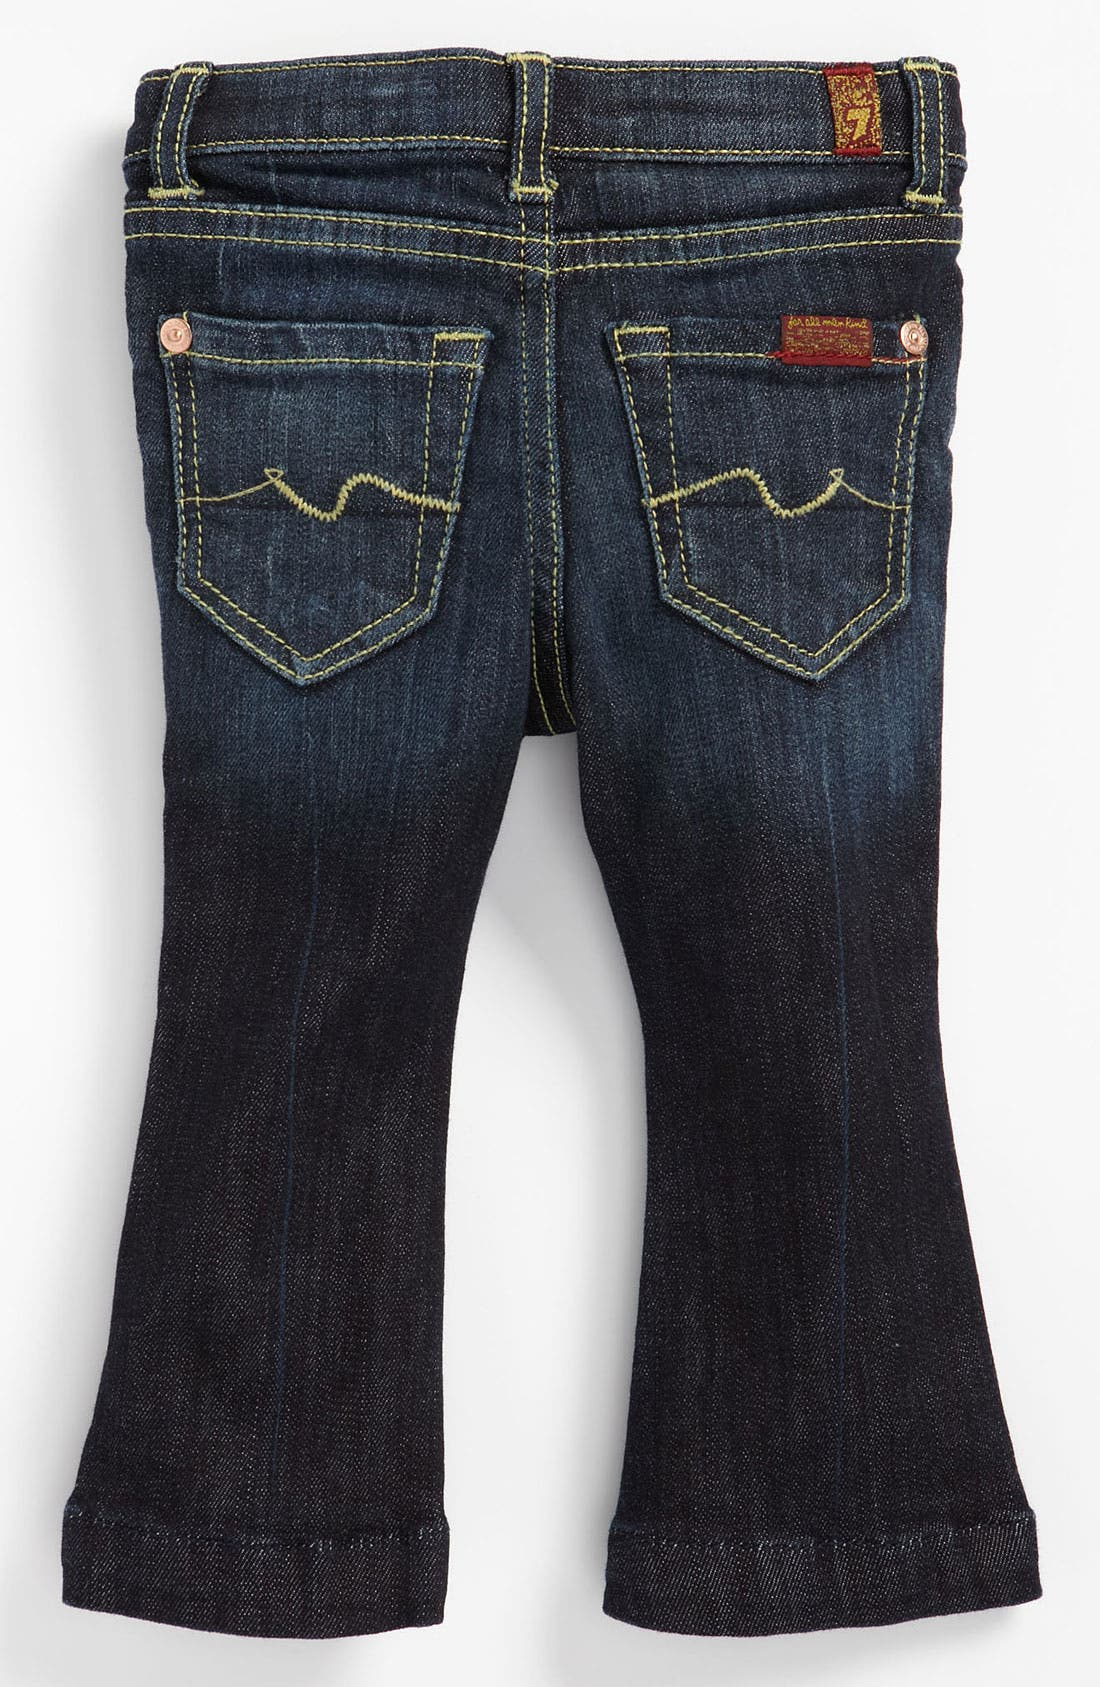 Alternate Image 1 Selected - 7 For All Mankind® 'Kaylie' Slim Fit Bootcut Jeans (Infant)